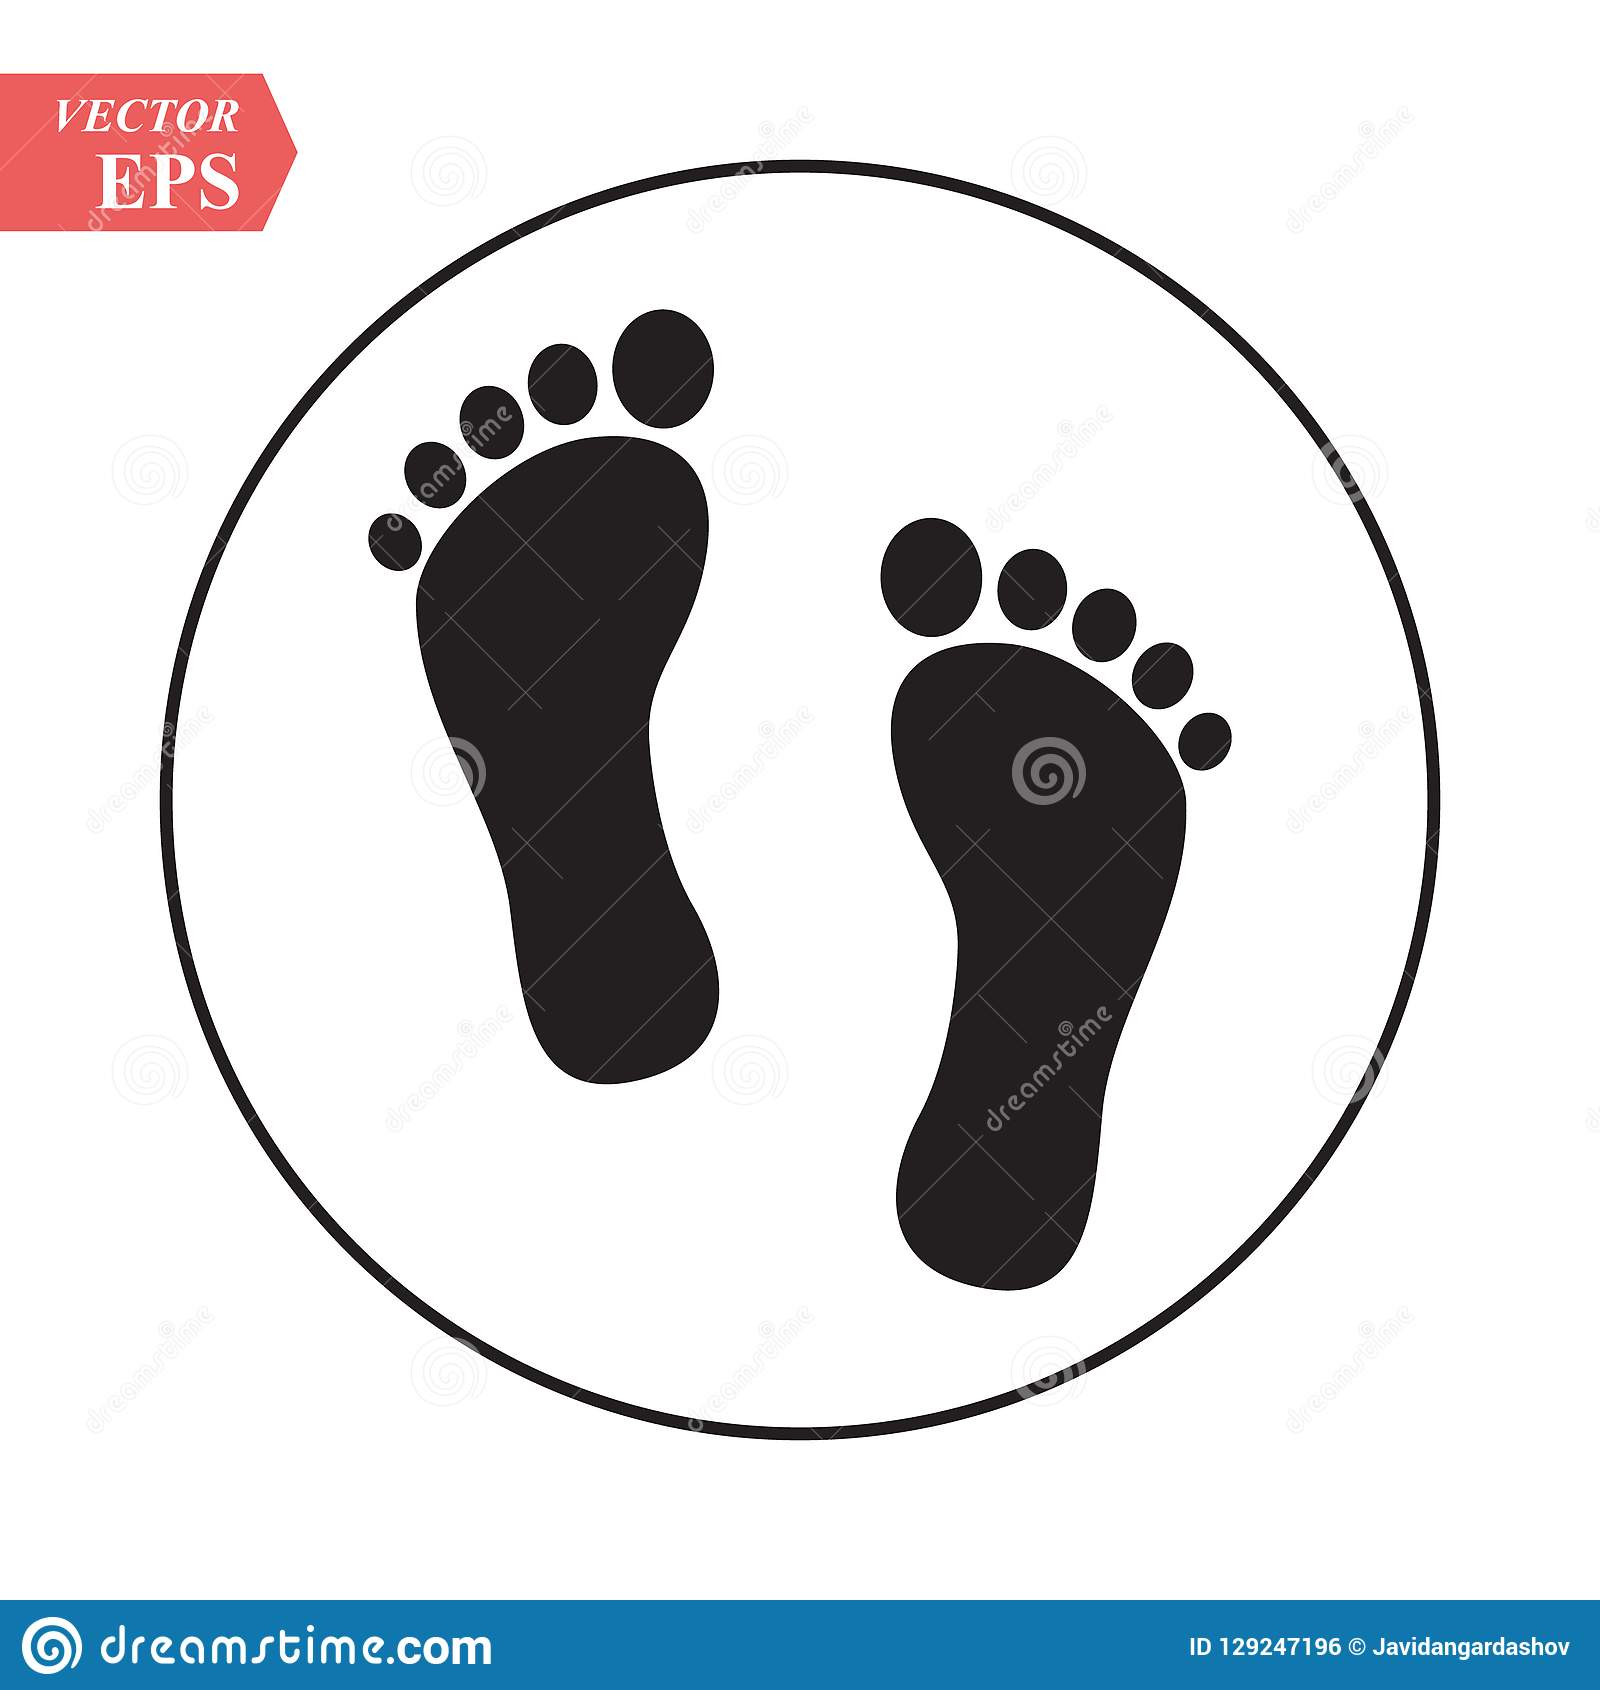 foot print icon bare foot print black on white feet icon vector stock vector illustration flat design style stock vector illustration of footstep button 129247196 https www dreamstime com foot print icon bare black white feet vector stock illustration flat design style eps image129247196